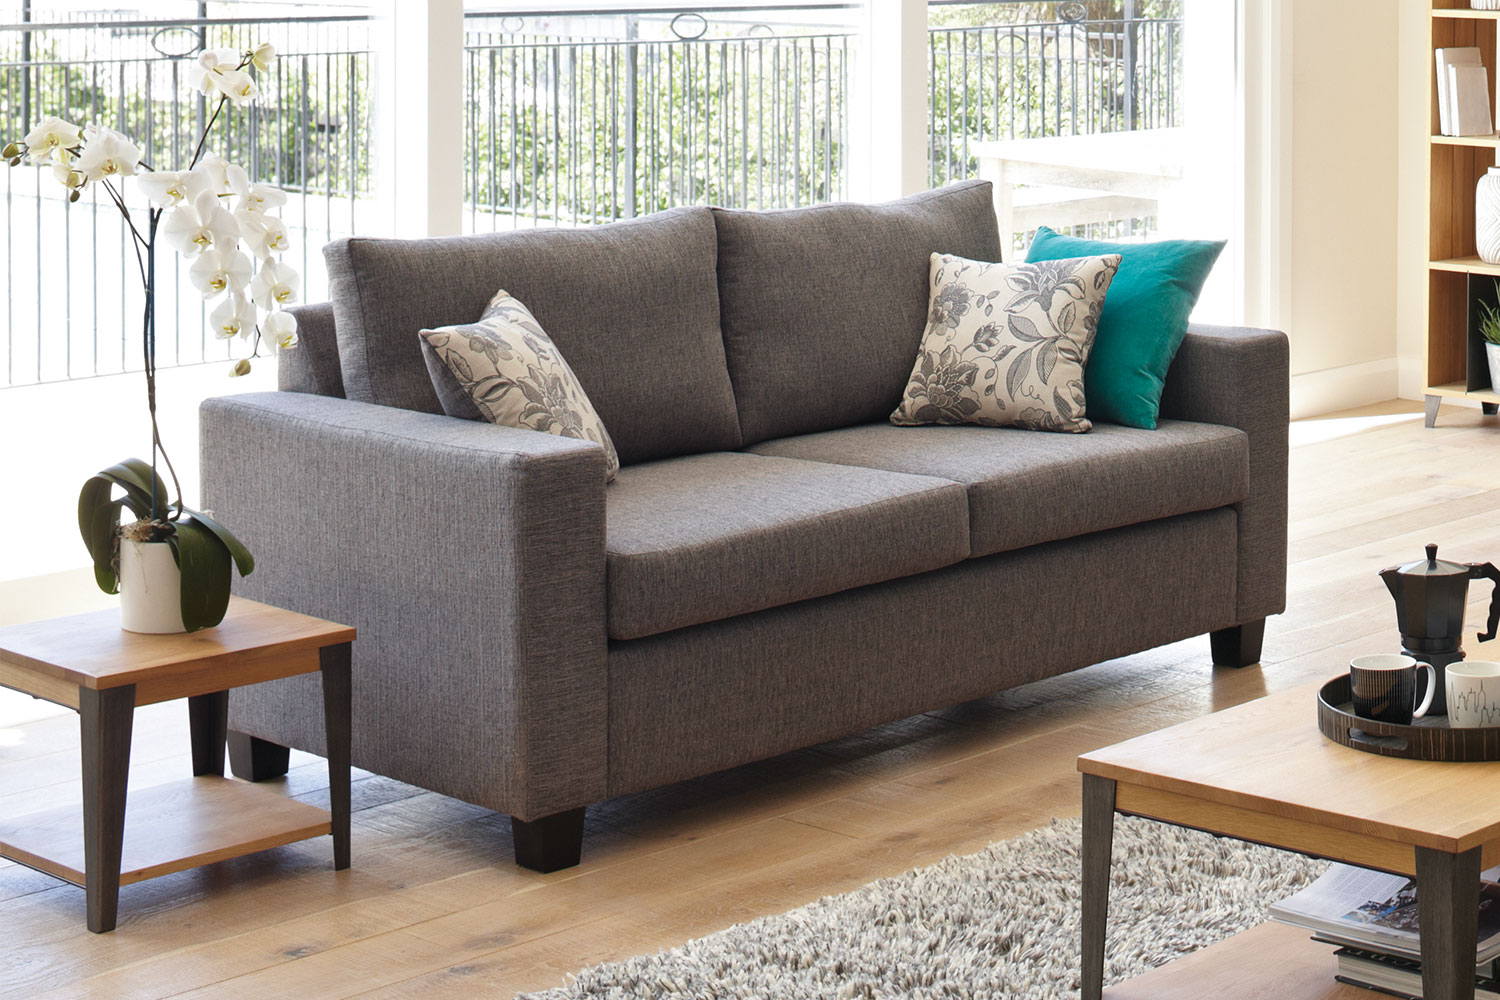 cooper sofa harvey norman beige leather bed vogue microfiber reversible chaise sectional